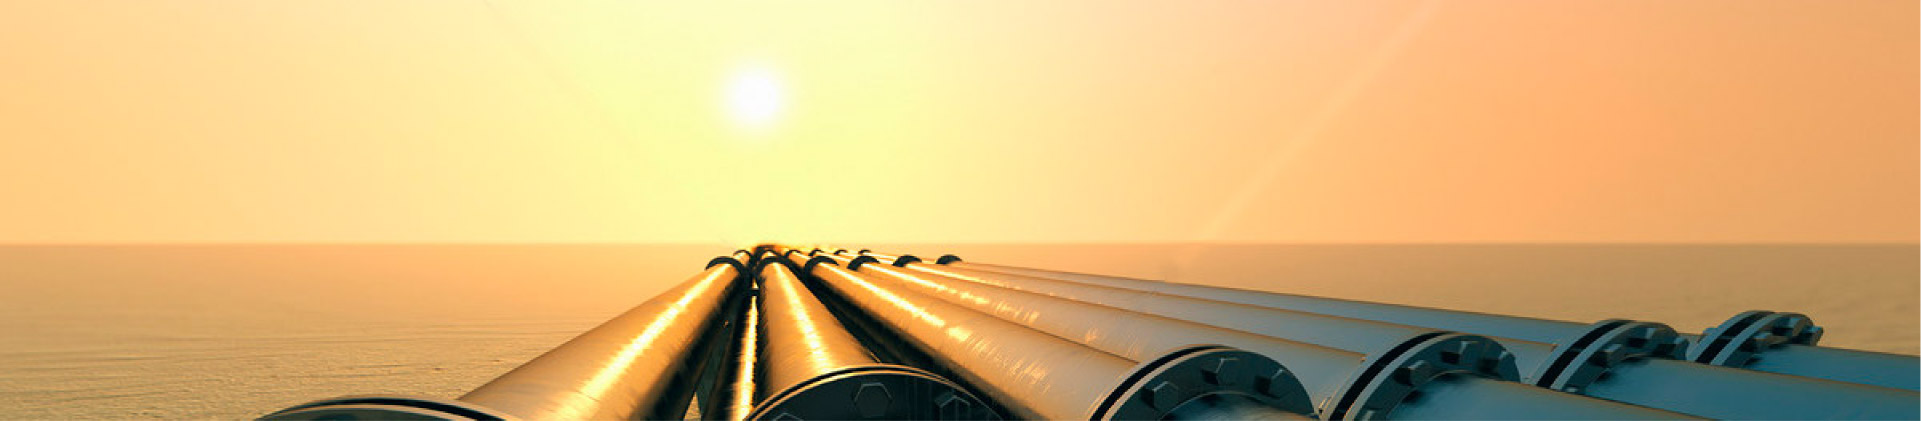 The gas pipeline in Central Asia has transported 200 billion cubic meters of natural gas to the dome